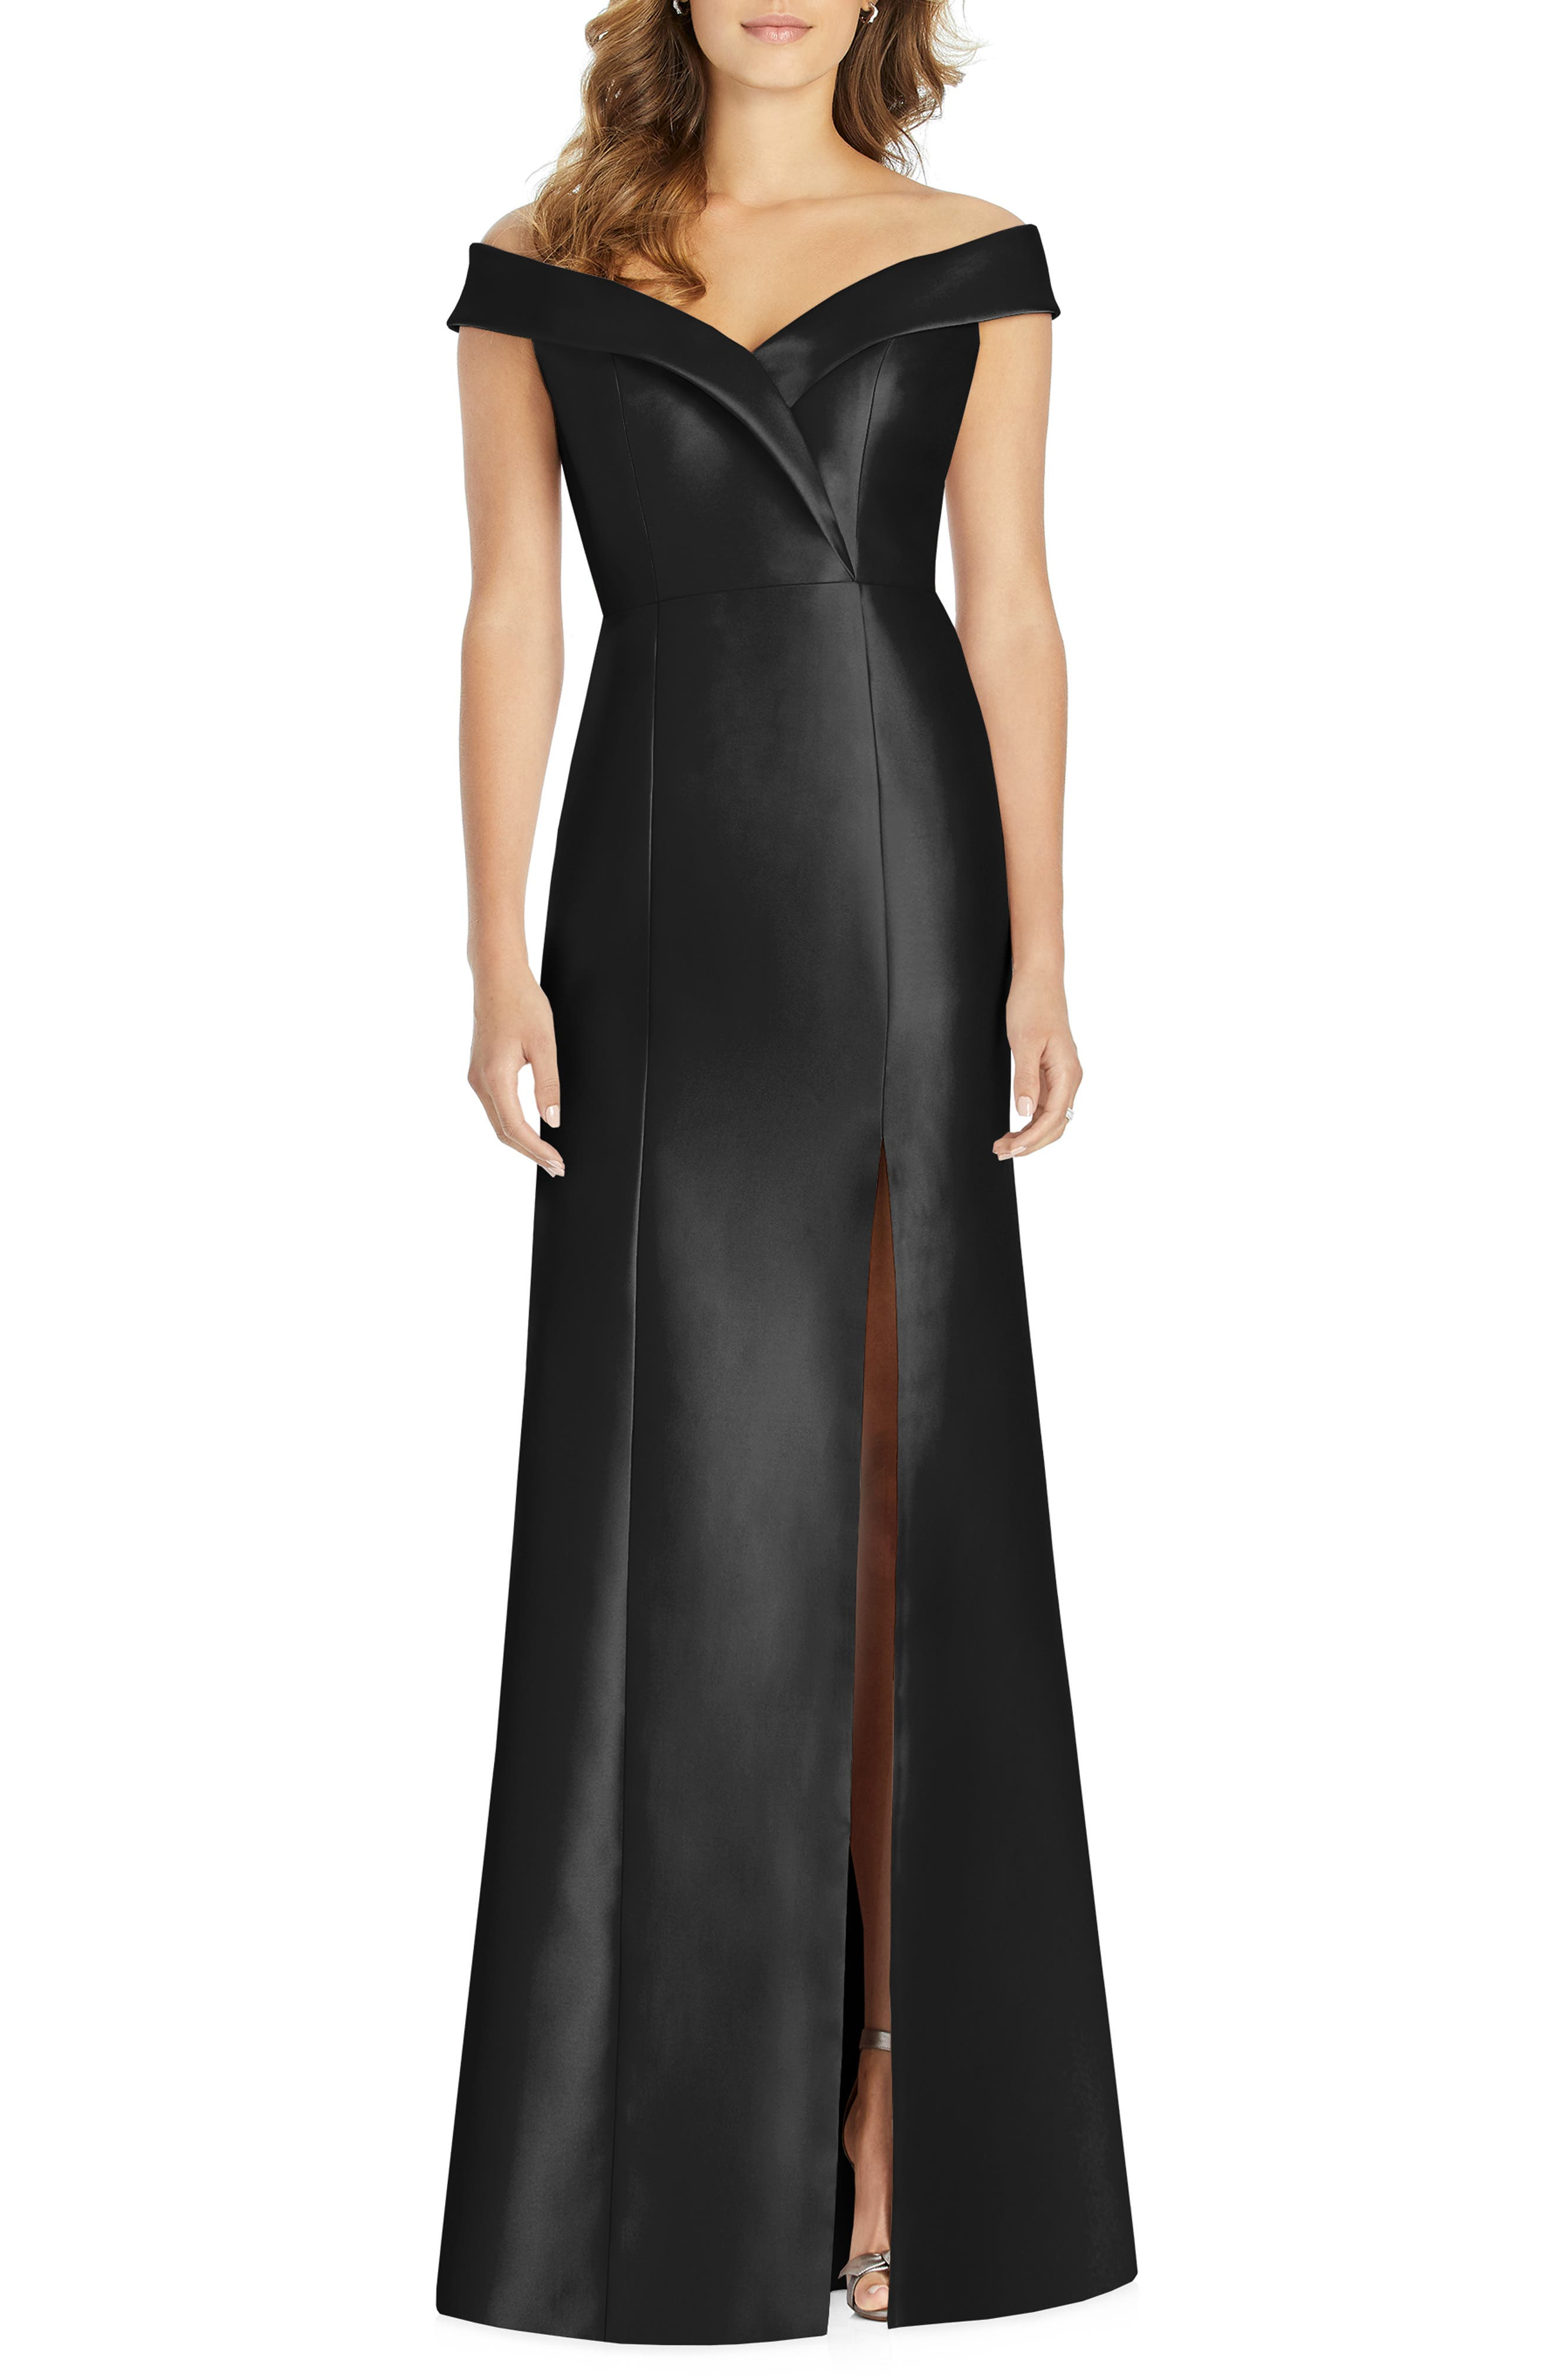 ALFRED SUNG Portrait Collar Satin Gown, Main, color, BLACK